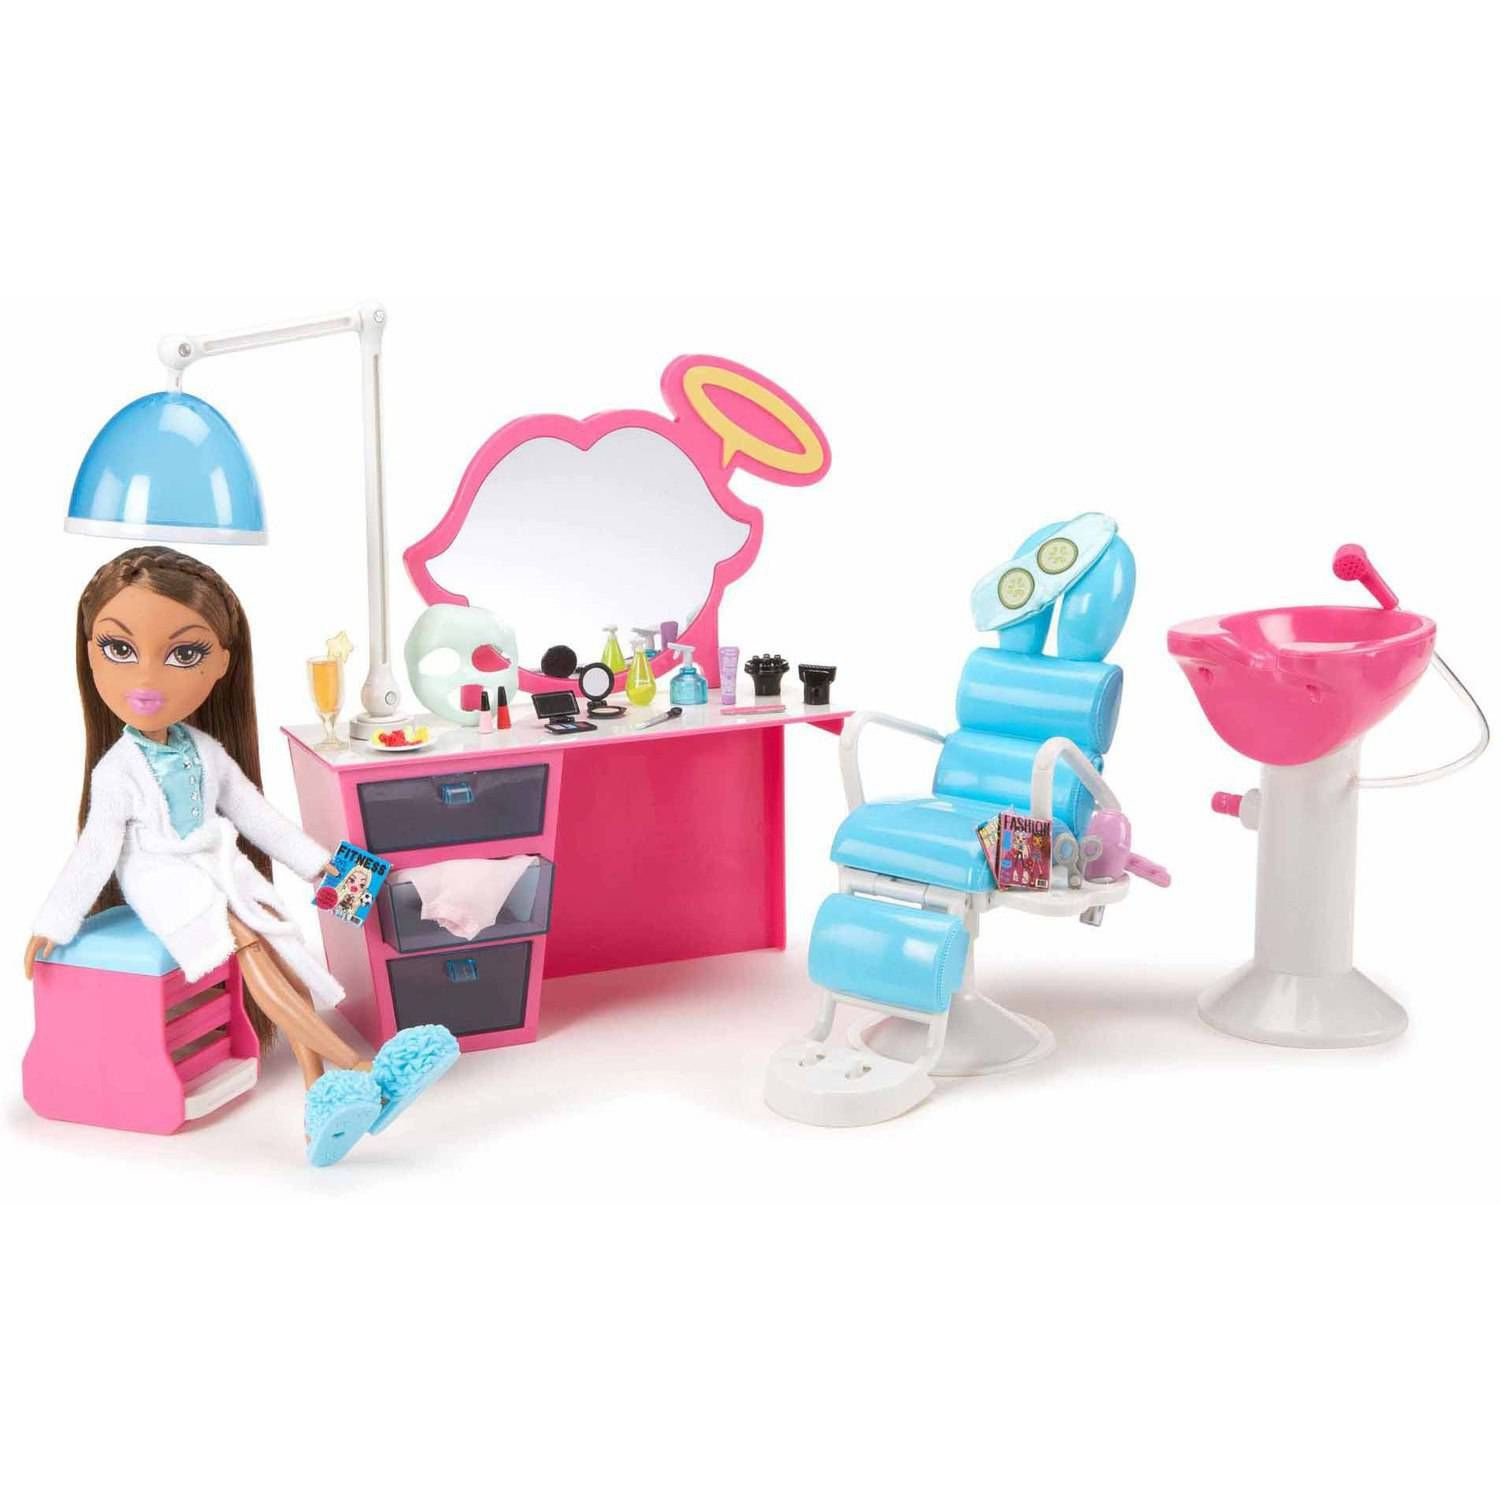 Bratz Sleepover Spa and Hair Studio - Walmart.com | Miniature salon ...